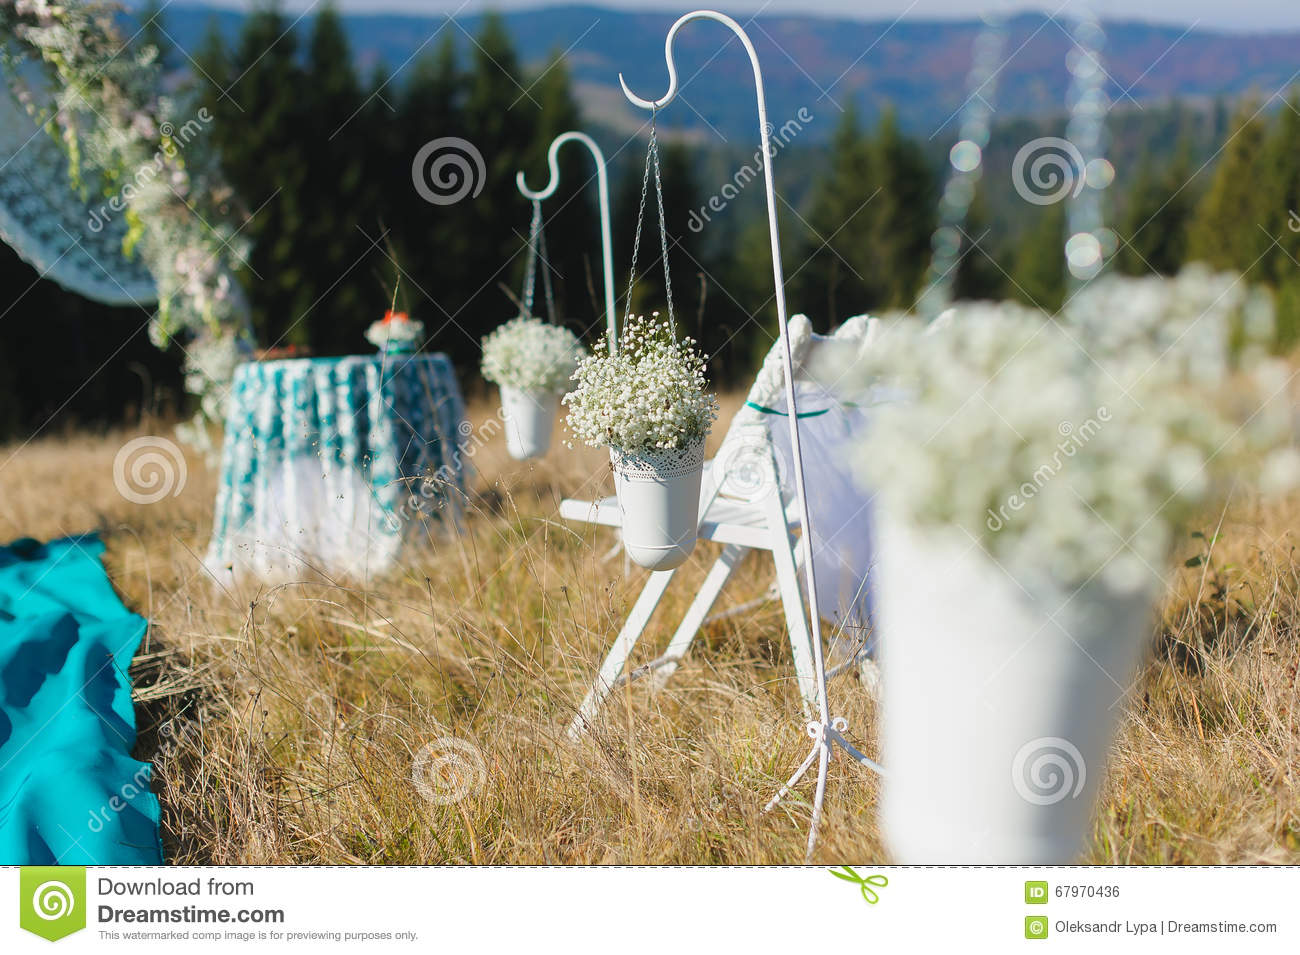 Outdoor wedding ceremony chair decorations - Outdoor Wedding Chair Decorations Outdoor Wedding Ceremony Scene On A Mountain Slope Download